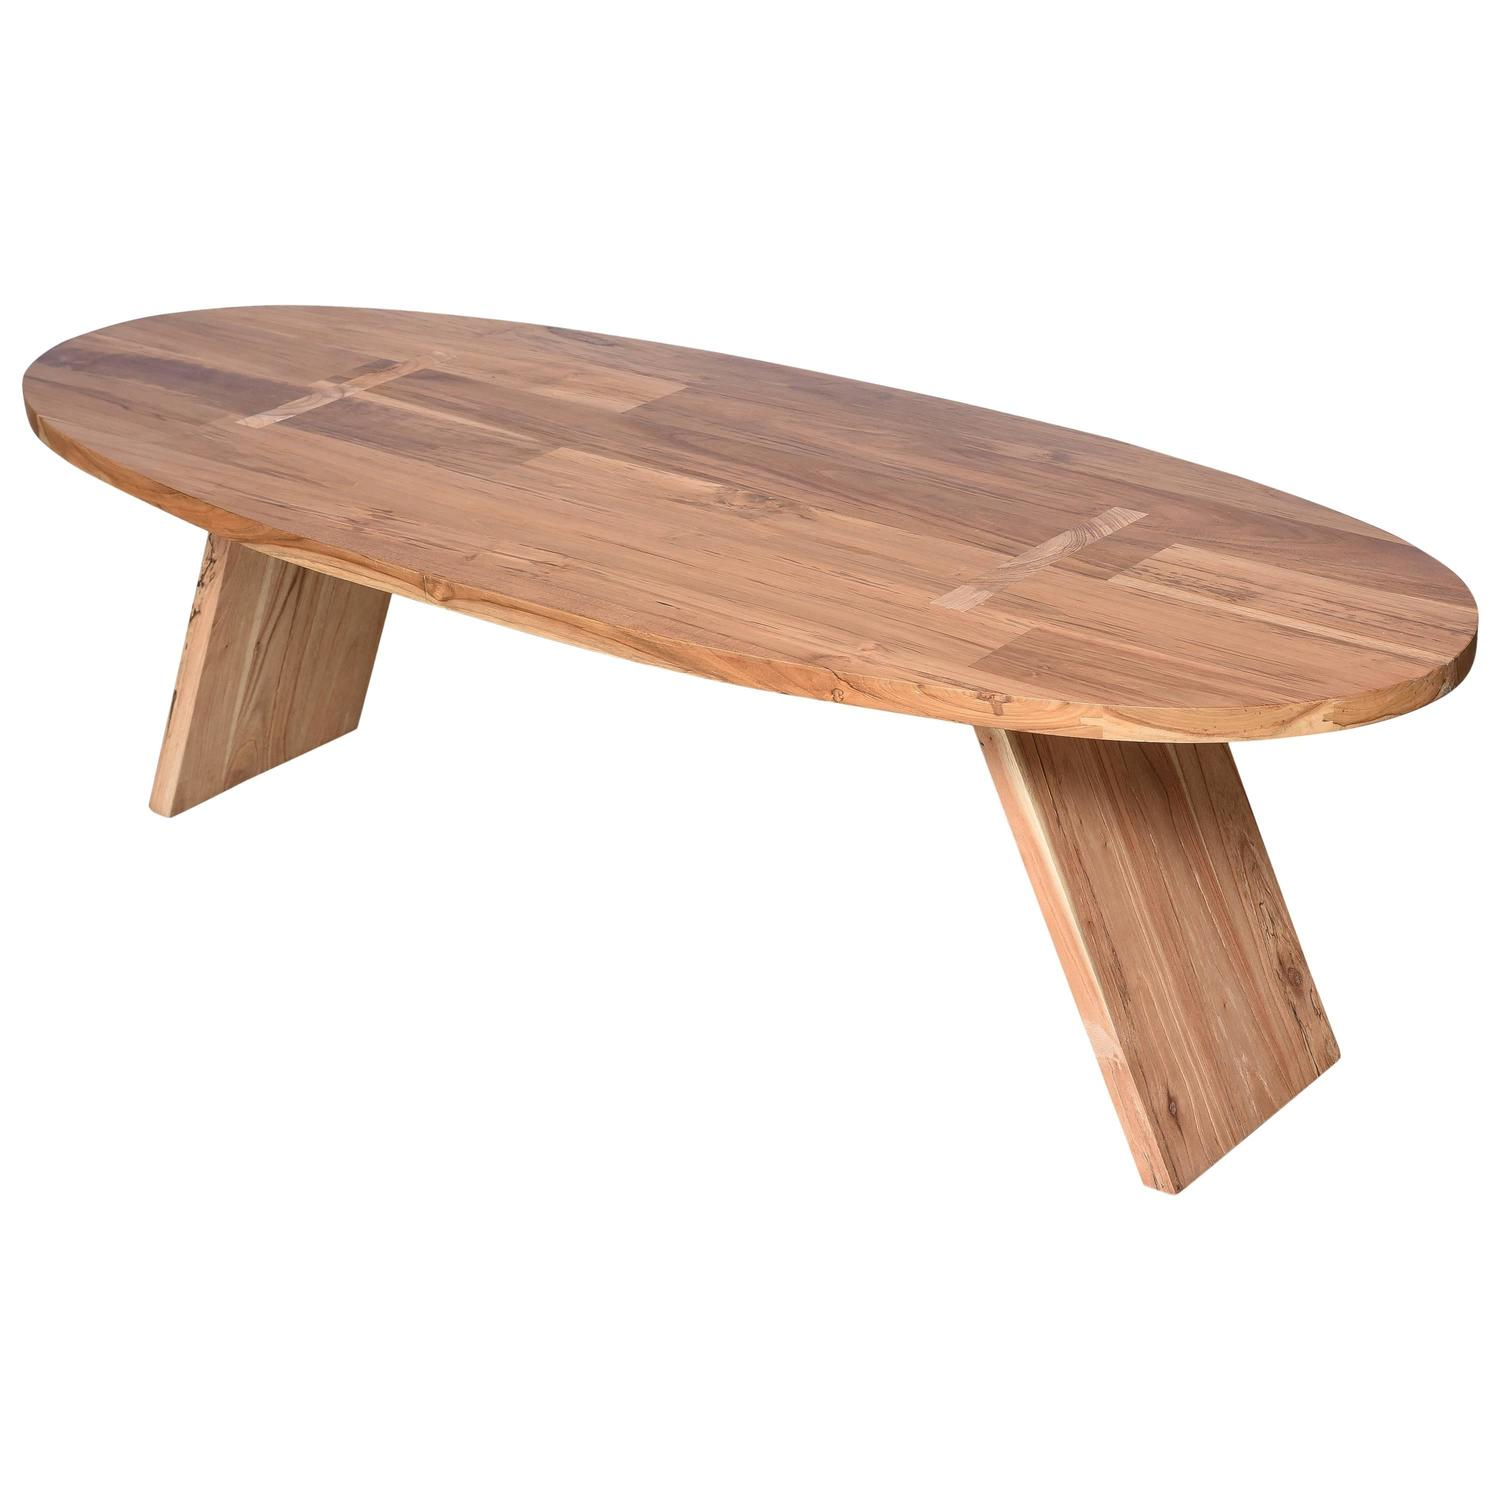 coffee table teak wood oval surfboard shape handmade. Black Bedroom Furniture Sets. Home Design Ideas